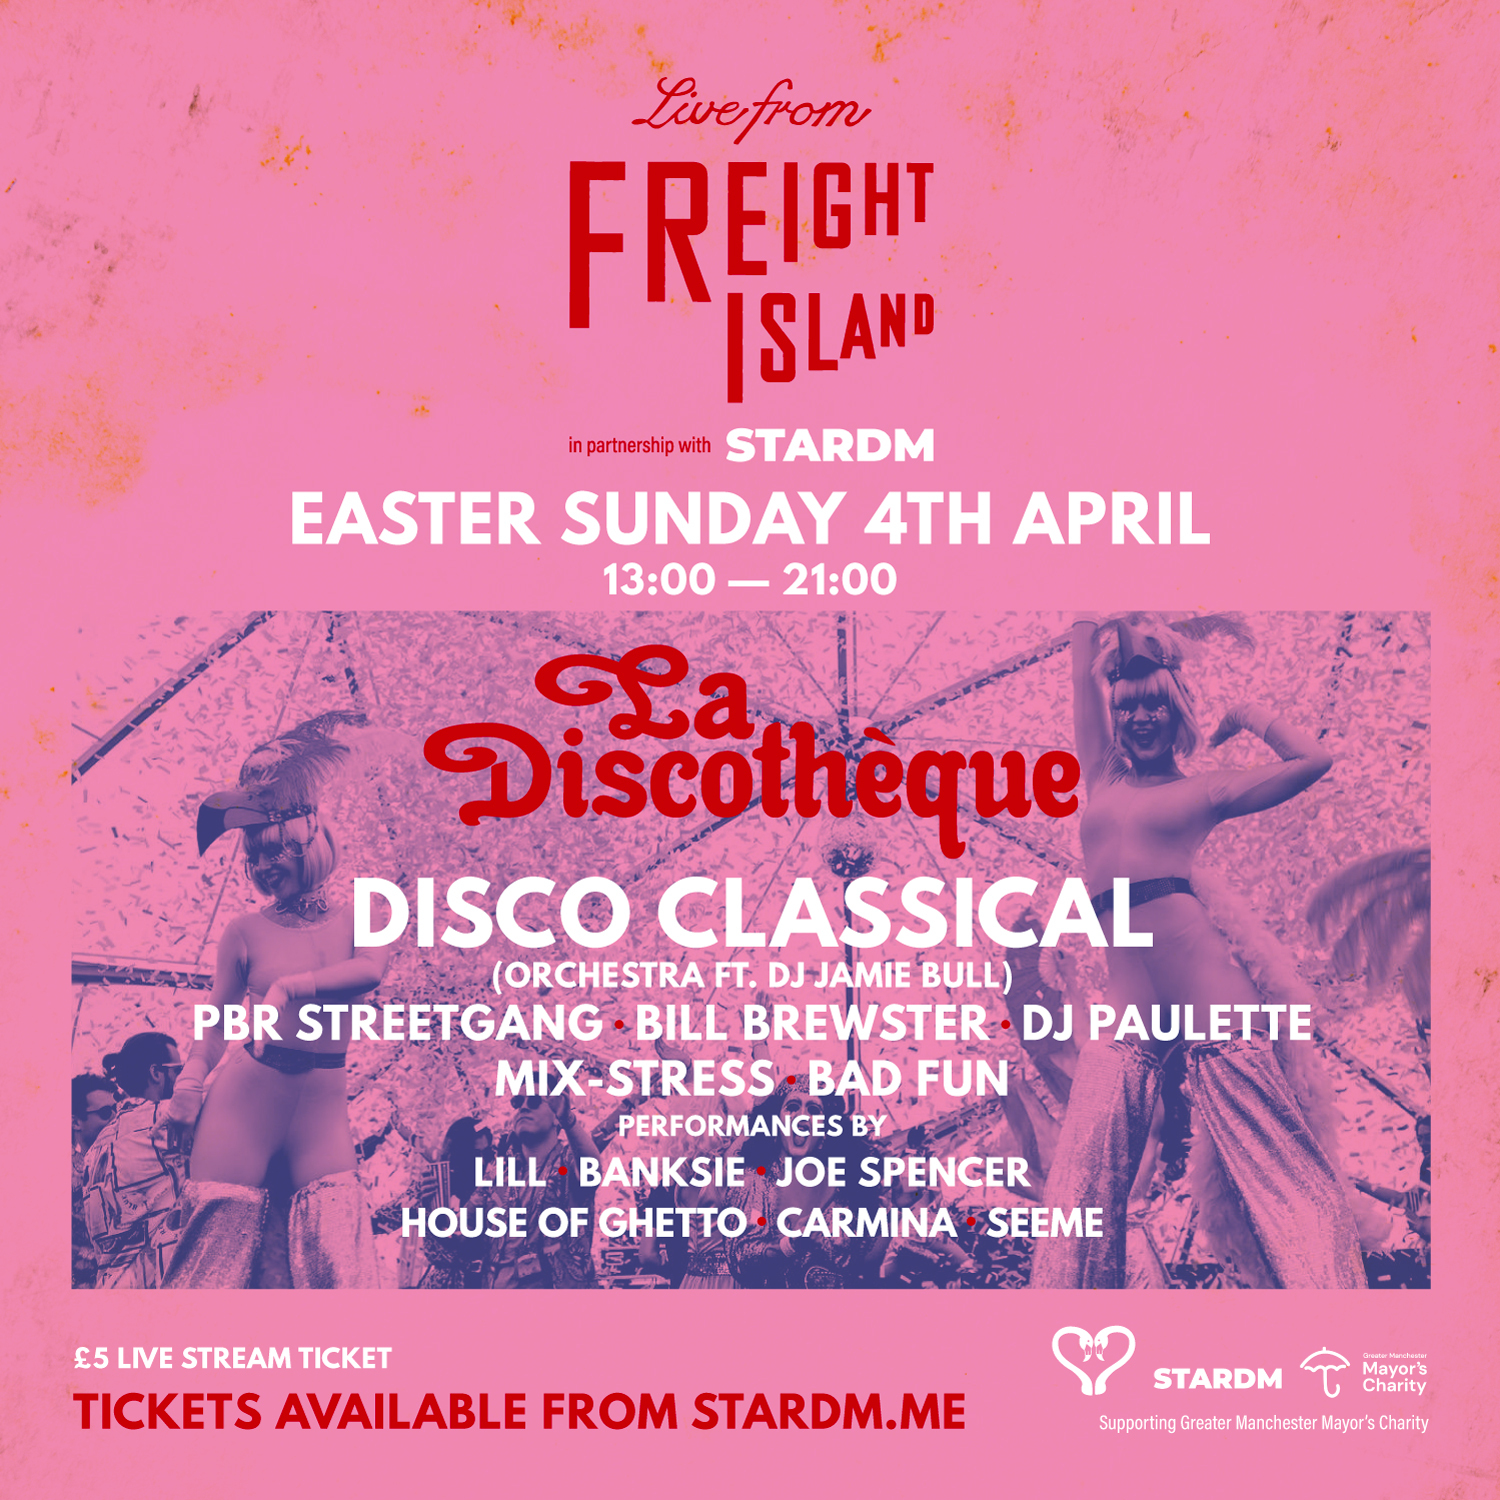 La Discotheque to host interactive disco party on Easter Sunday, The Manc